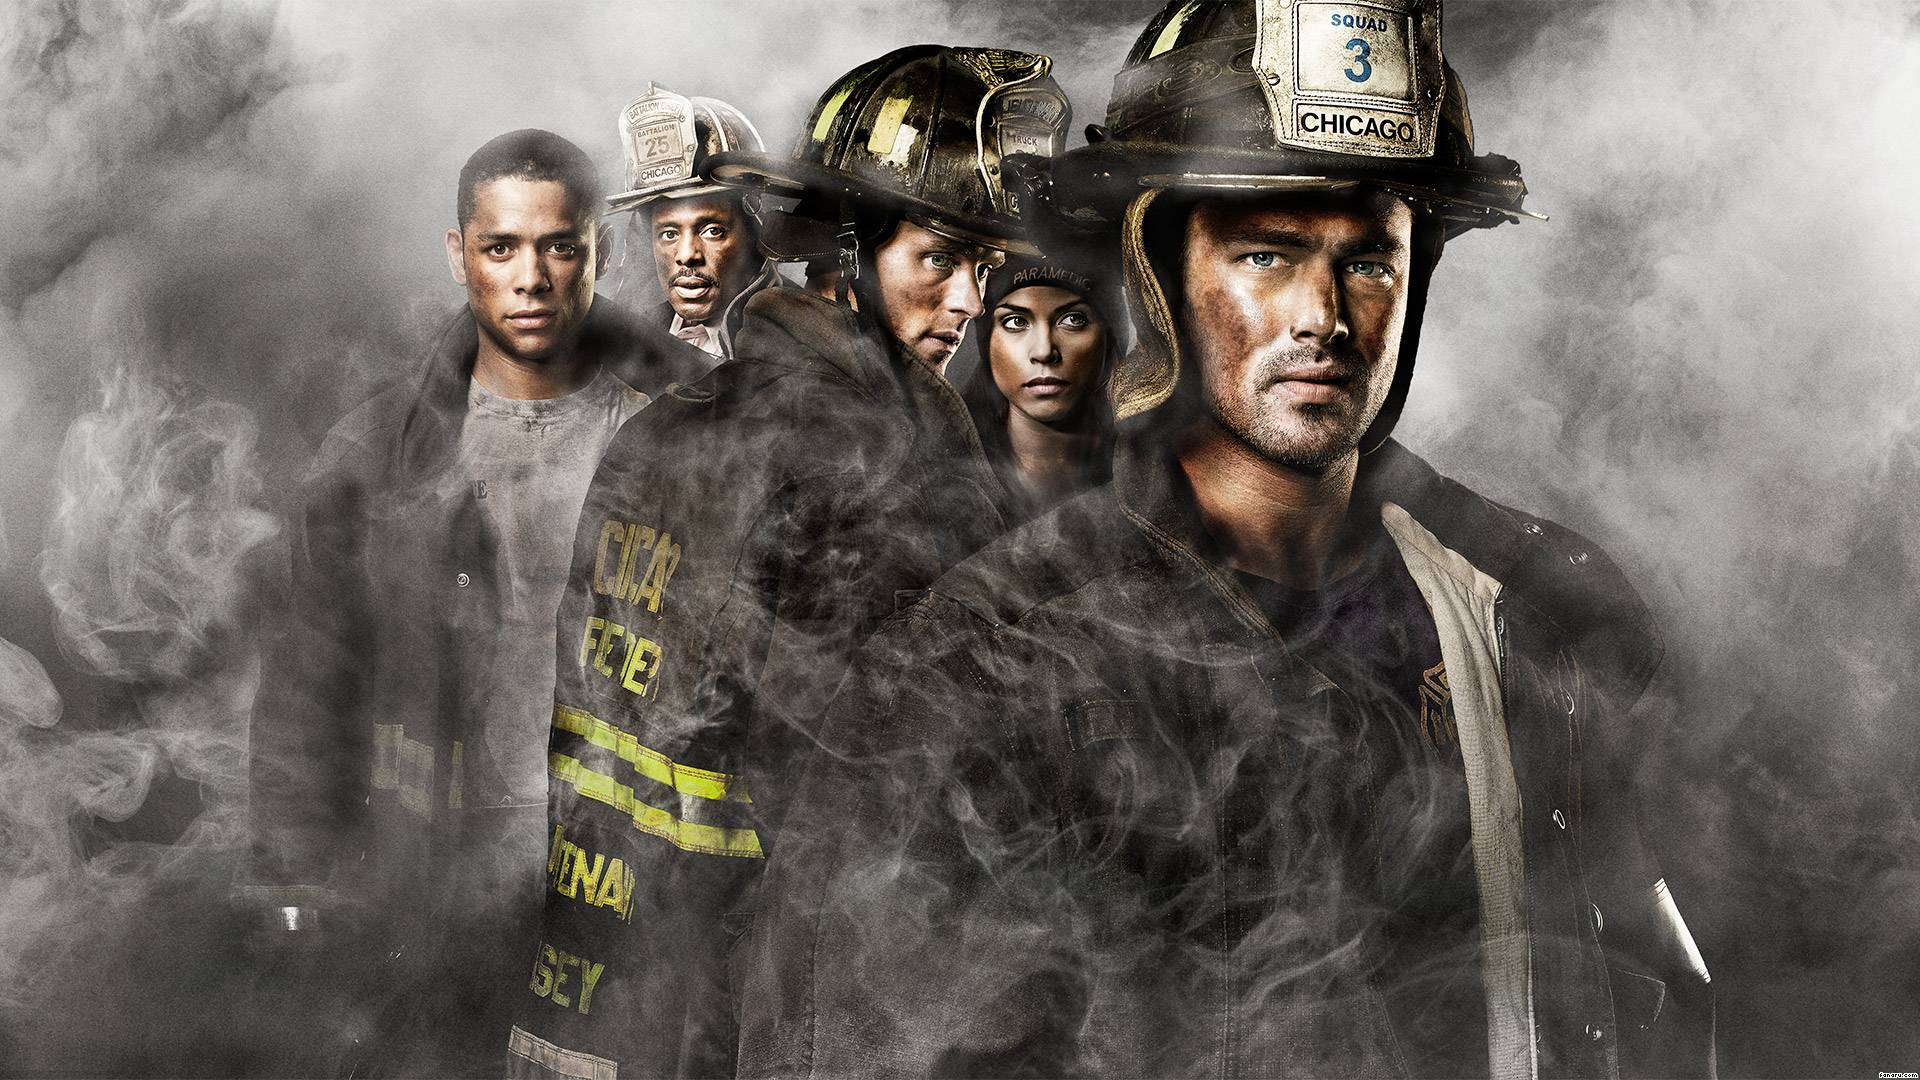 Free Fire Movie Wallpaper: Chicago Fire Wallpapers High Resolution And Quality Download